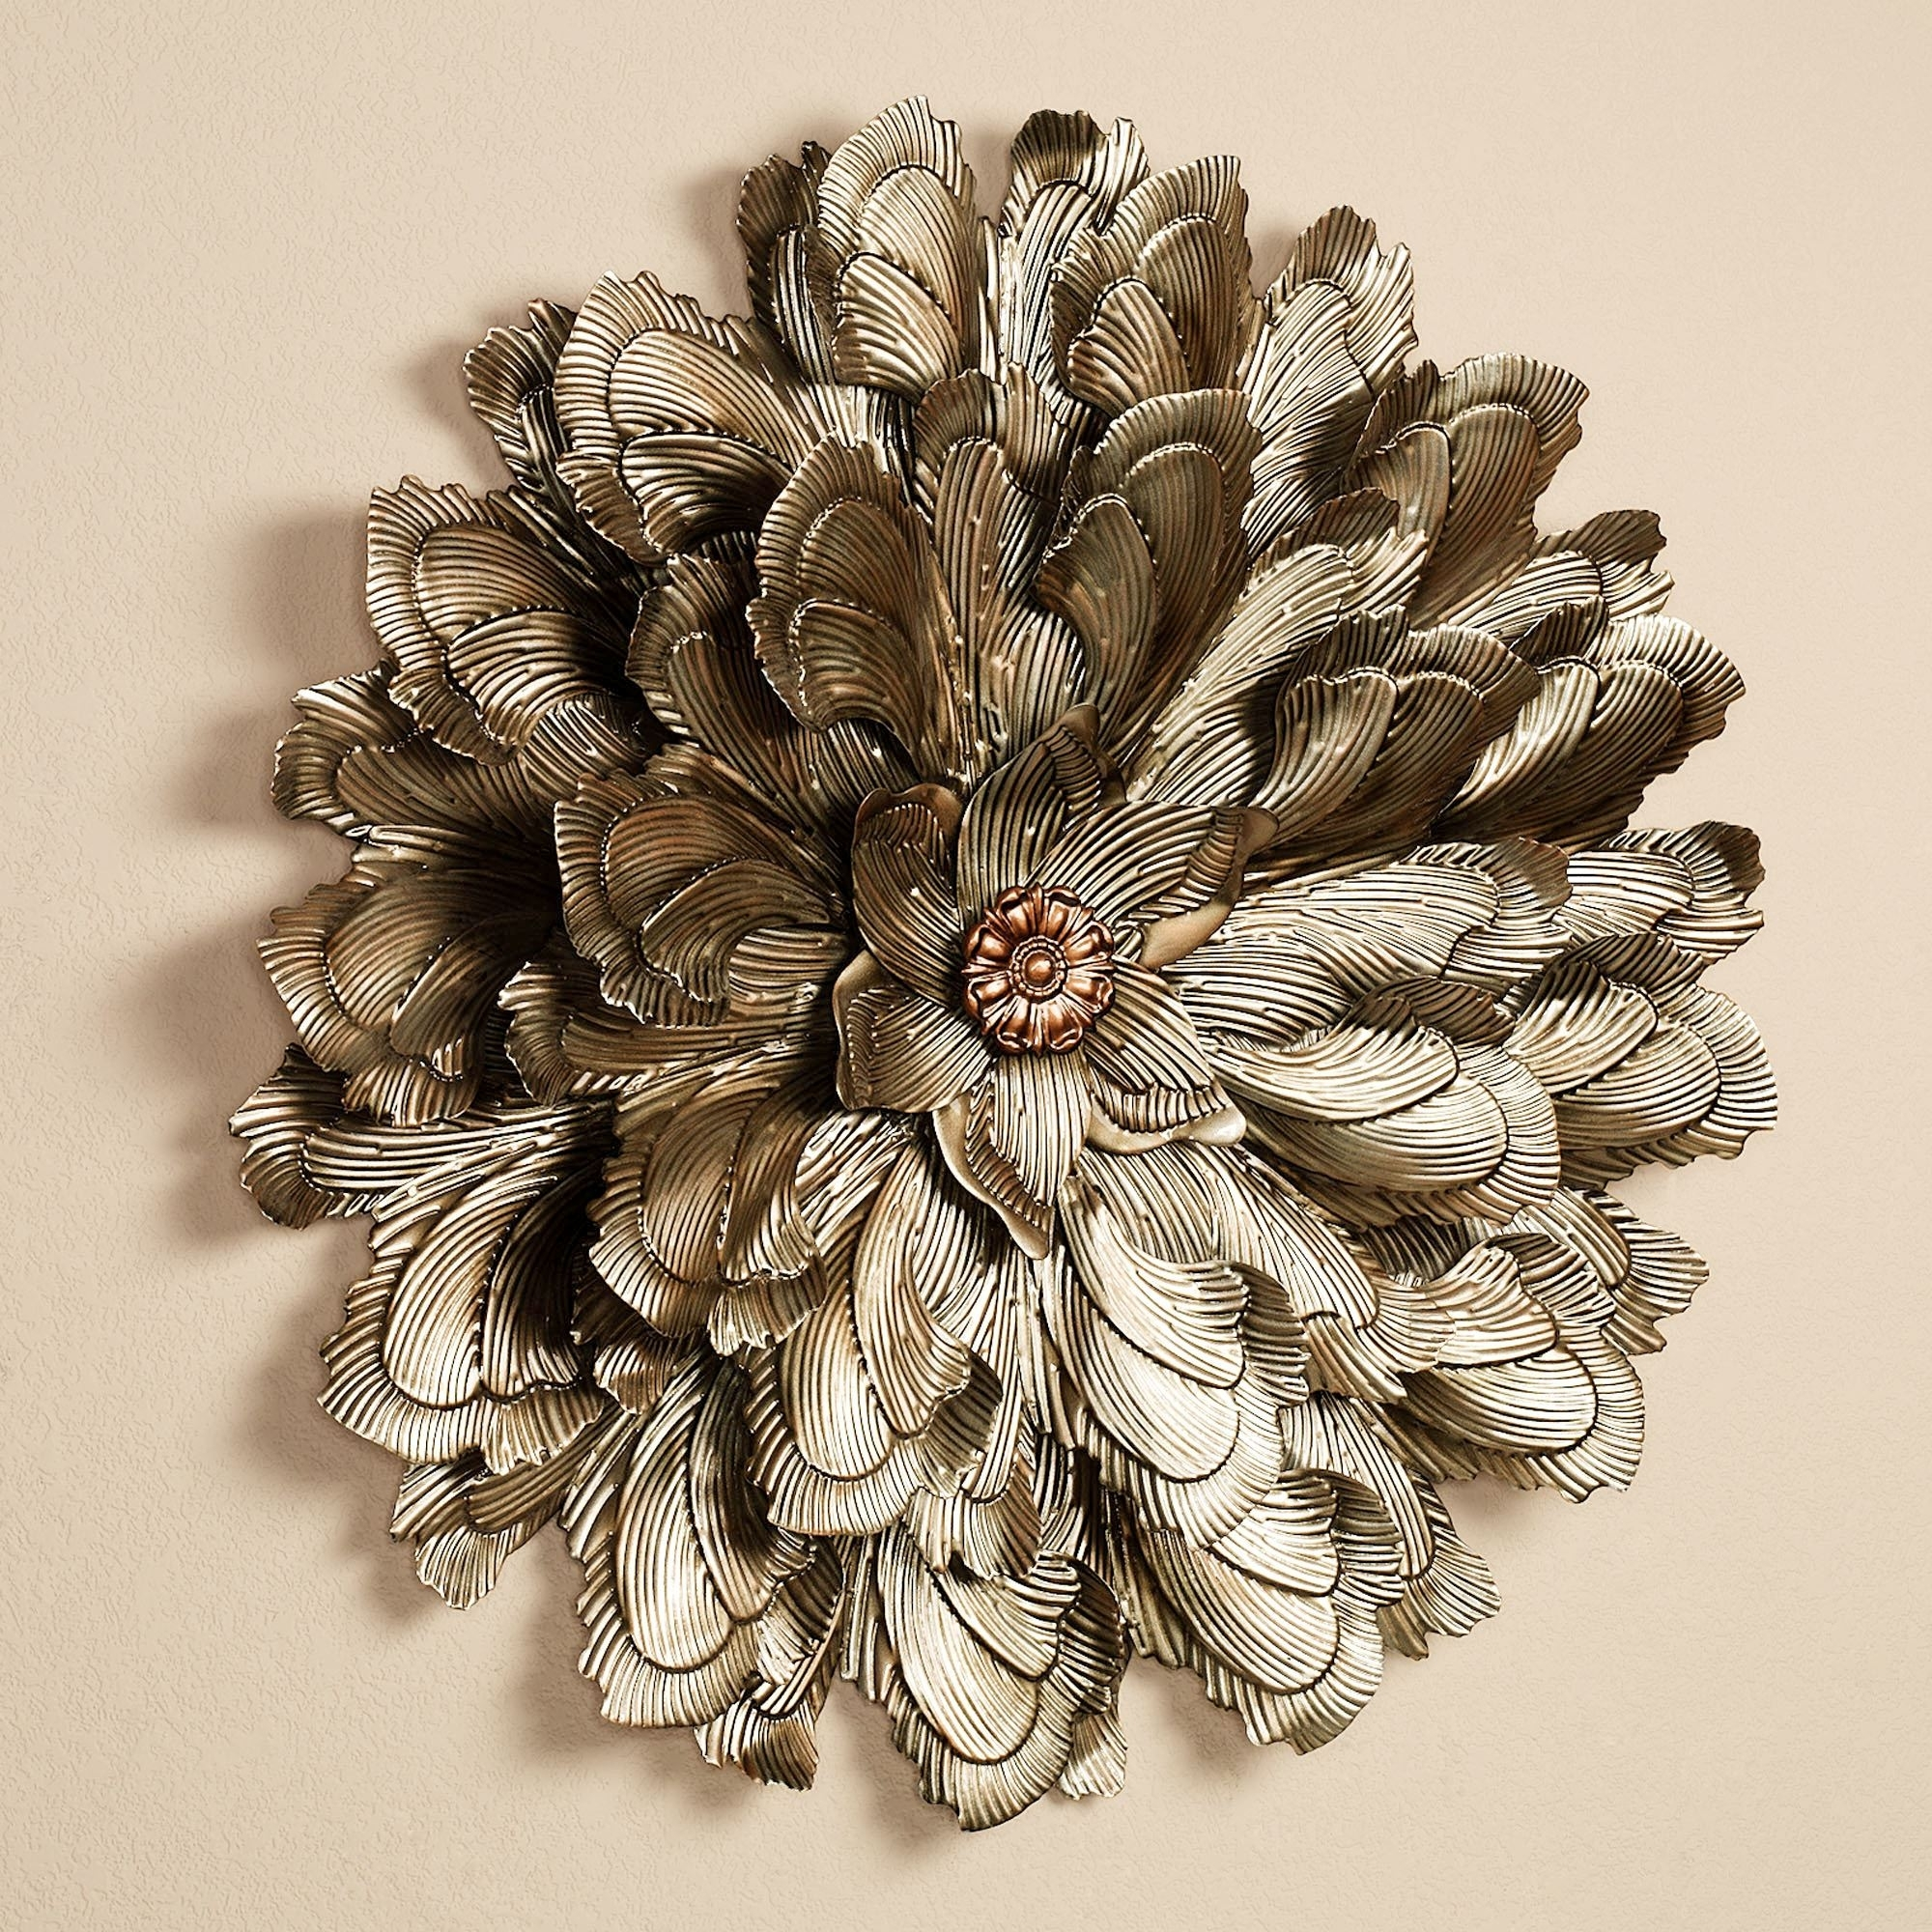 Metal Wall Art Flowers Big Metal Flower Wall Art – Amthuchanoi Intended For Latest Metal Flowers Wall Art (View 8 of 20)